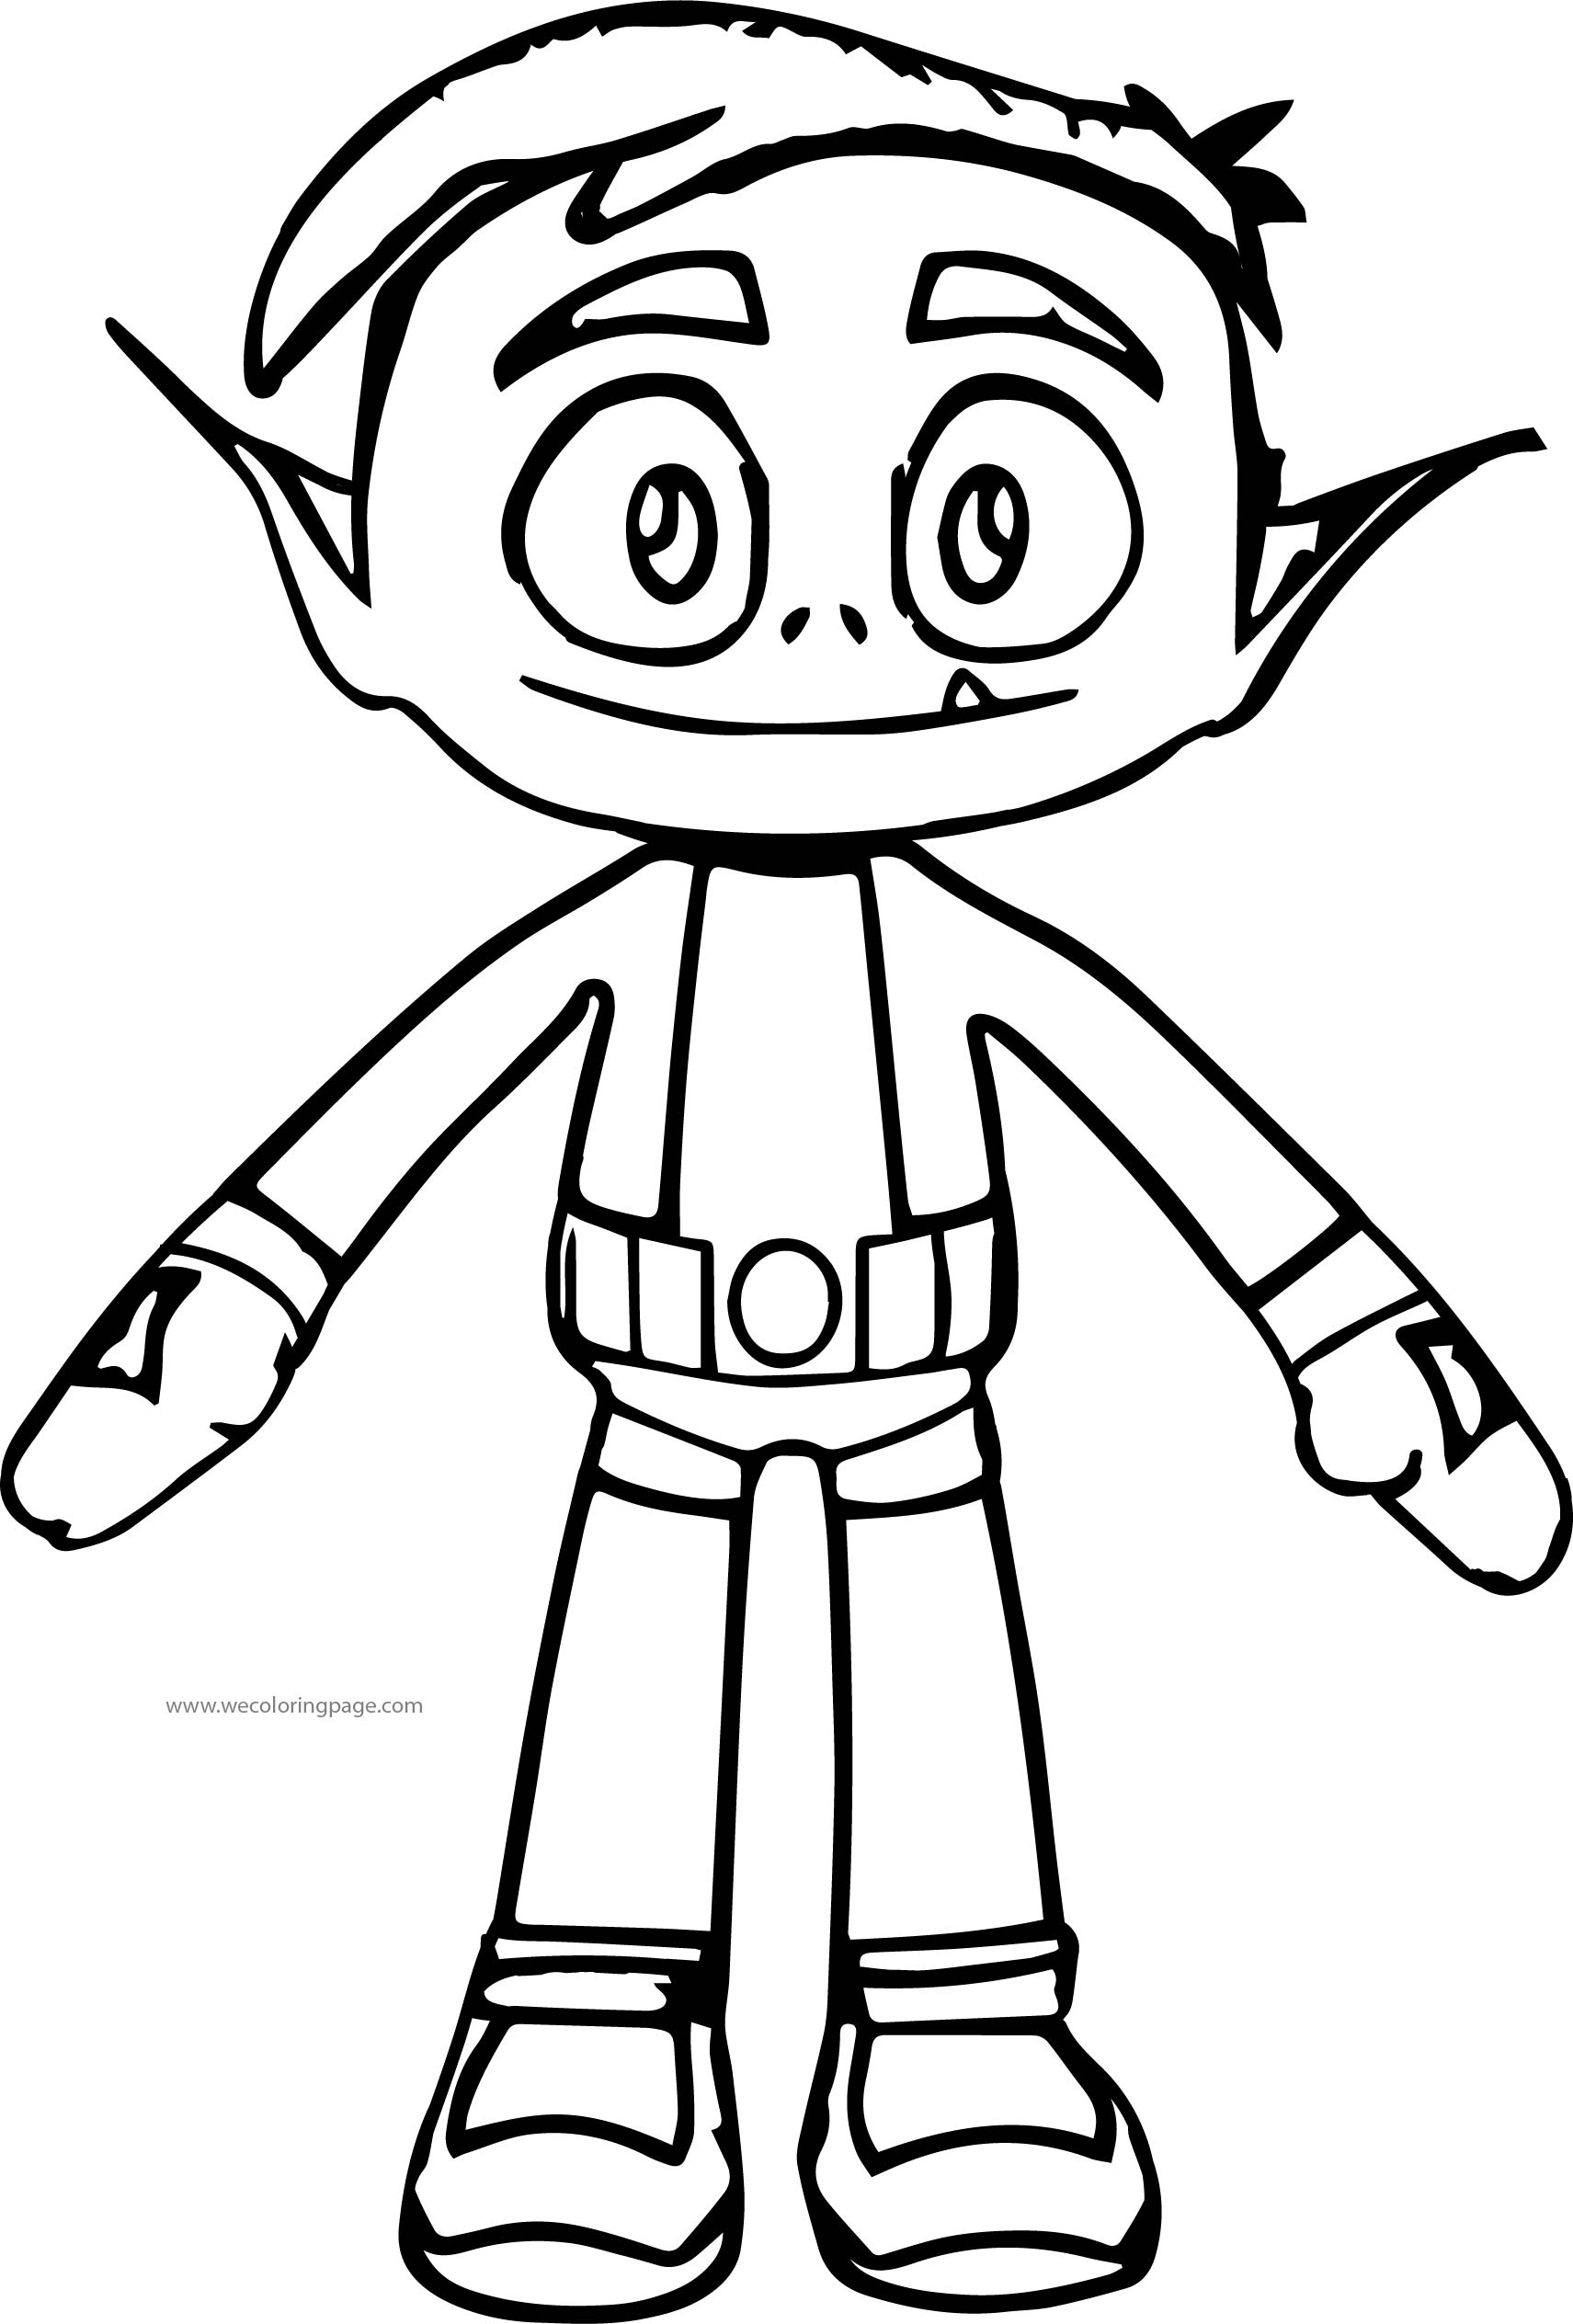 Teen Titans Go Robin Front View Coloring Pages